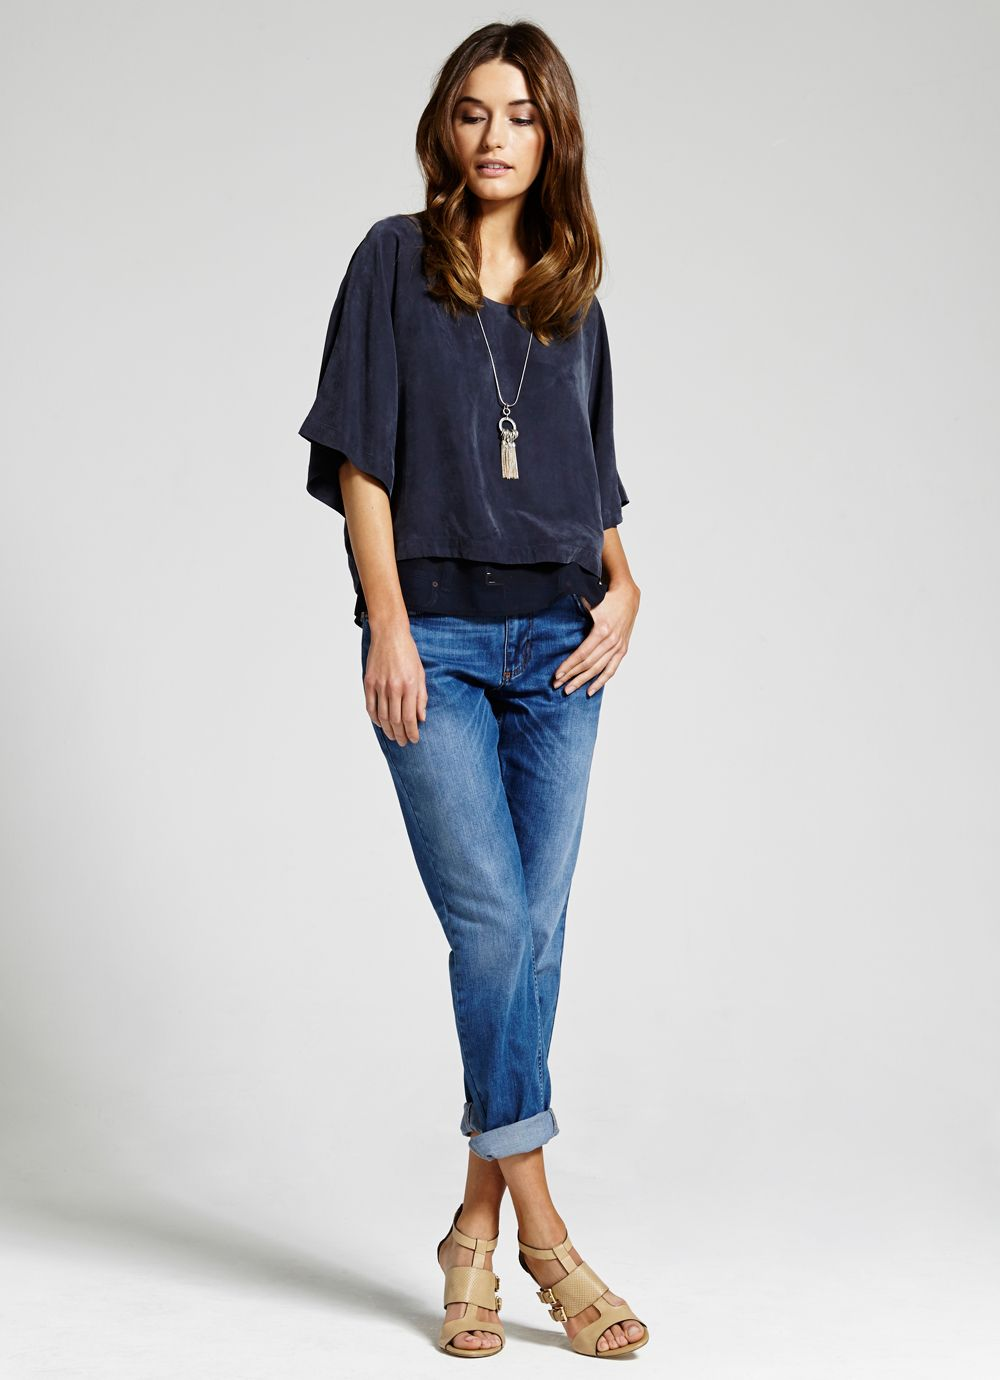 Cupro layered top